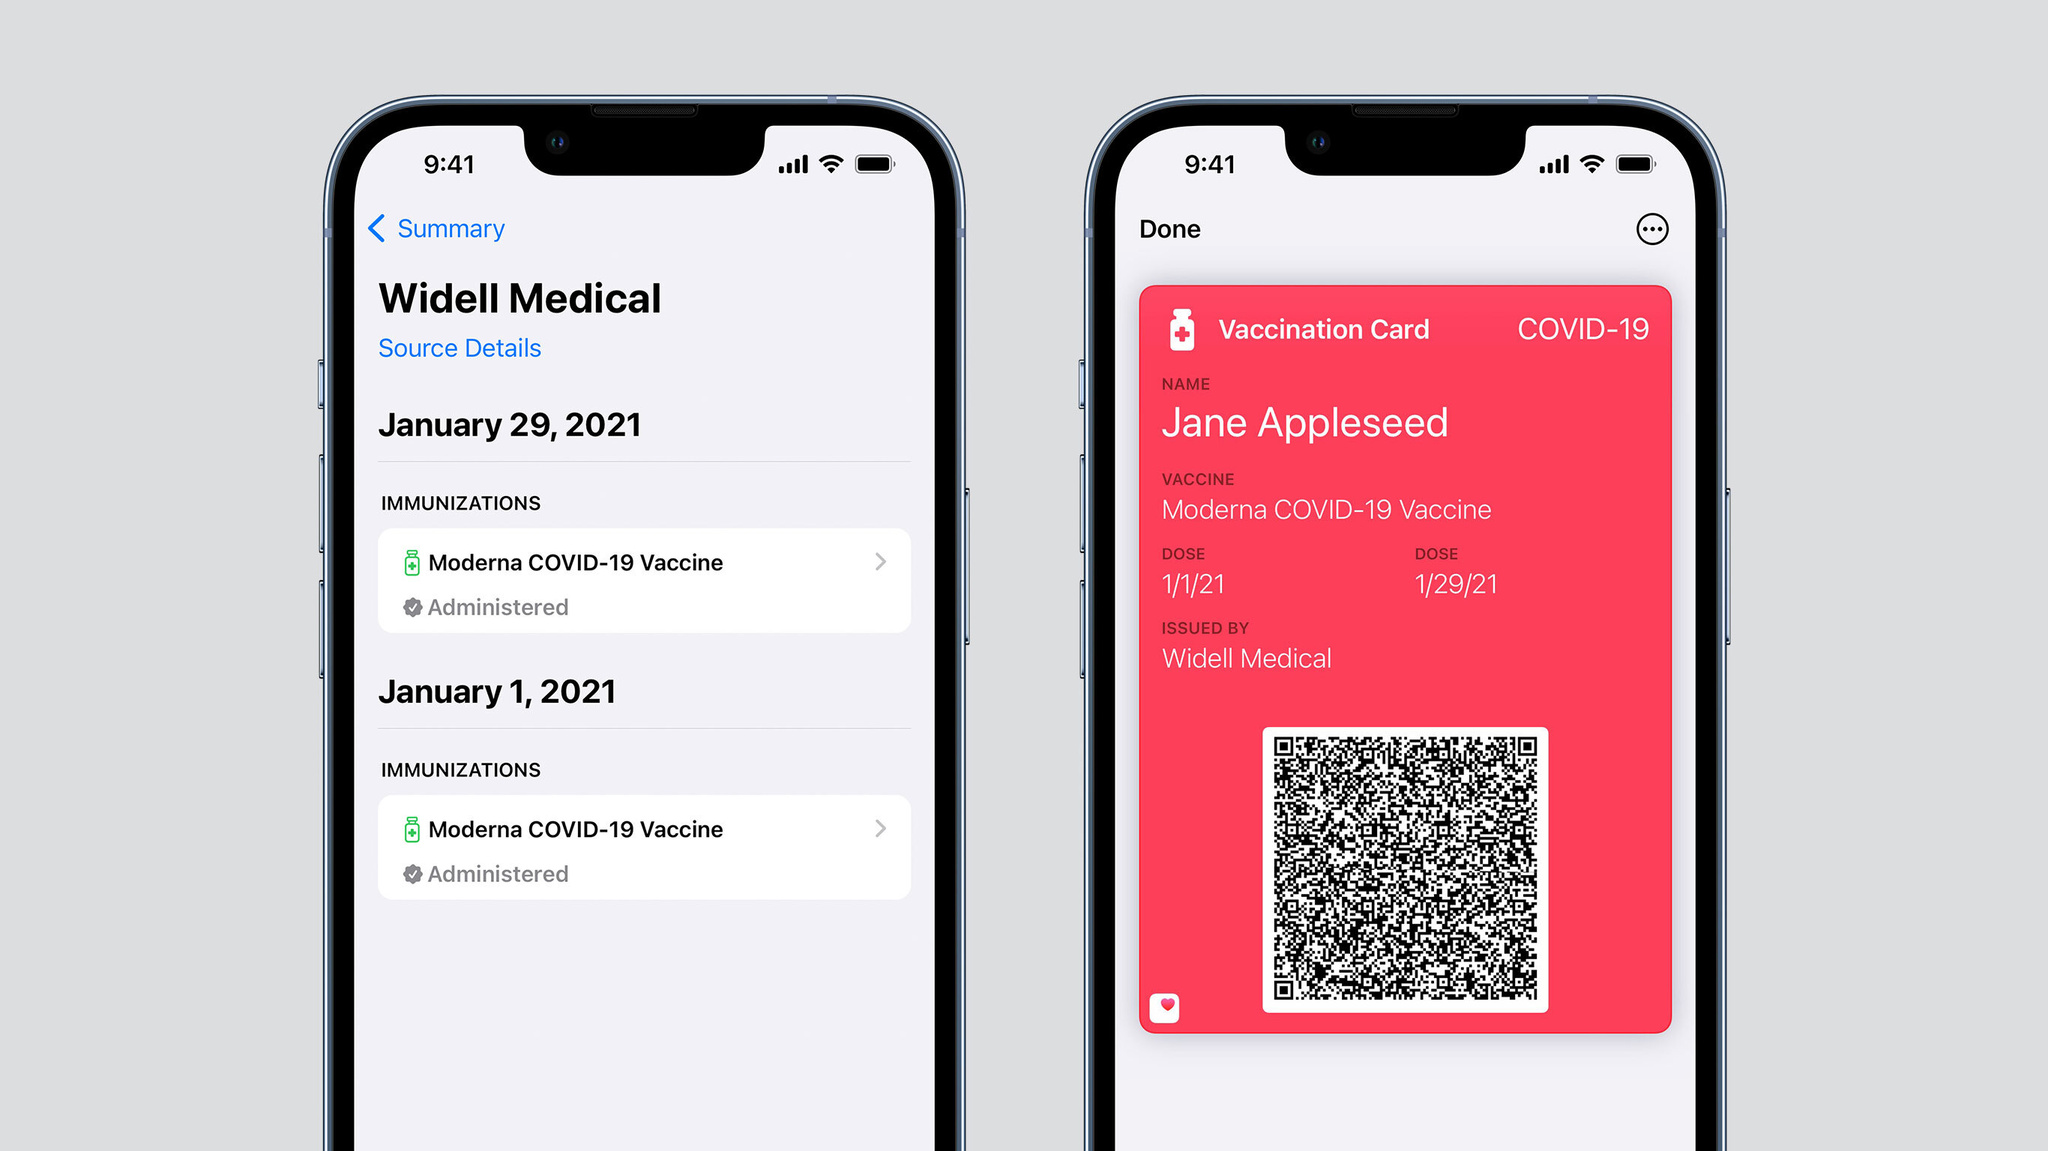 Verified health records in the Health app on iPhone. Vaccination card in the Wallet app on iPhone.